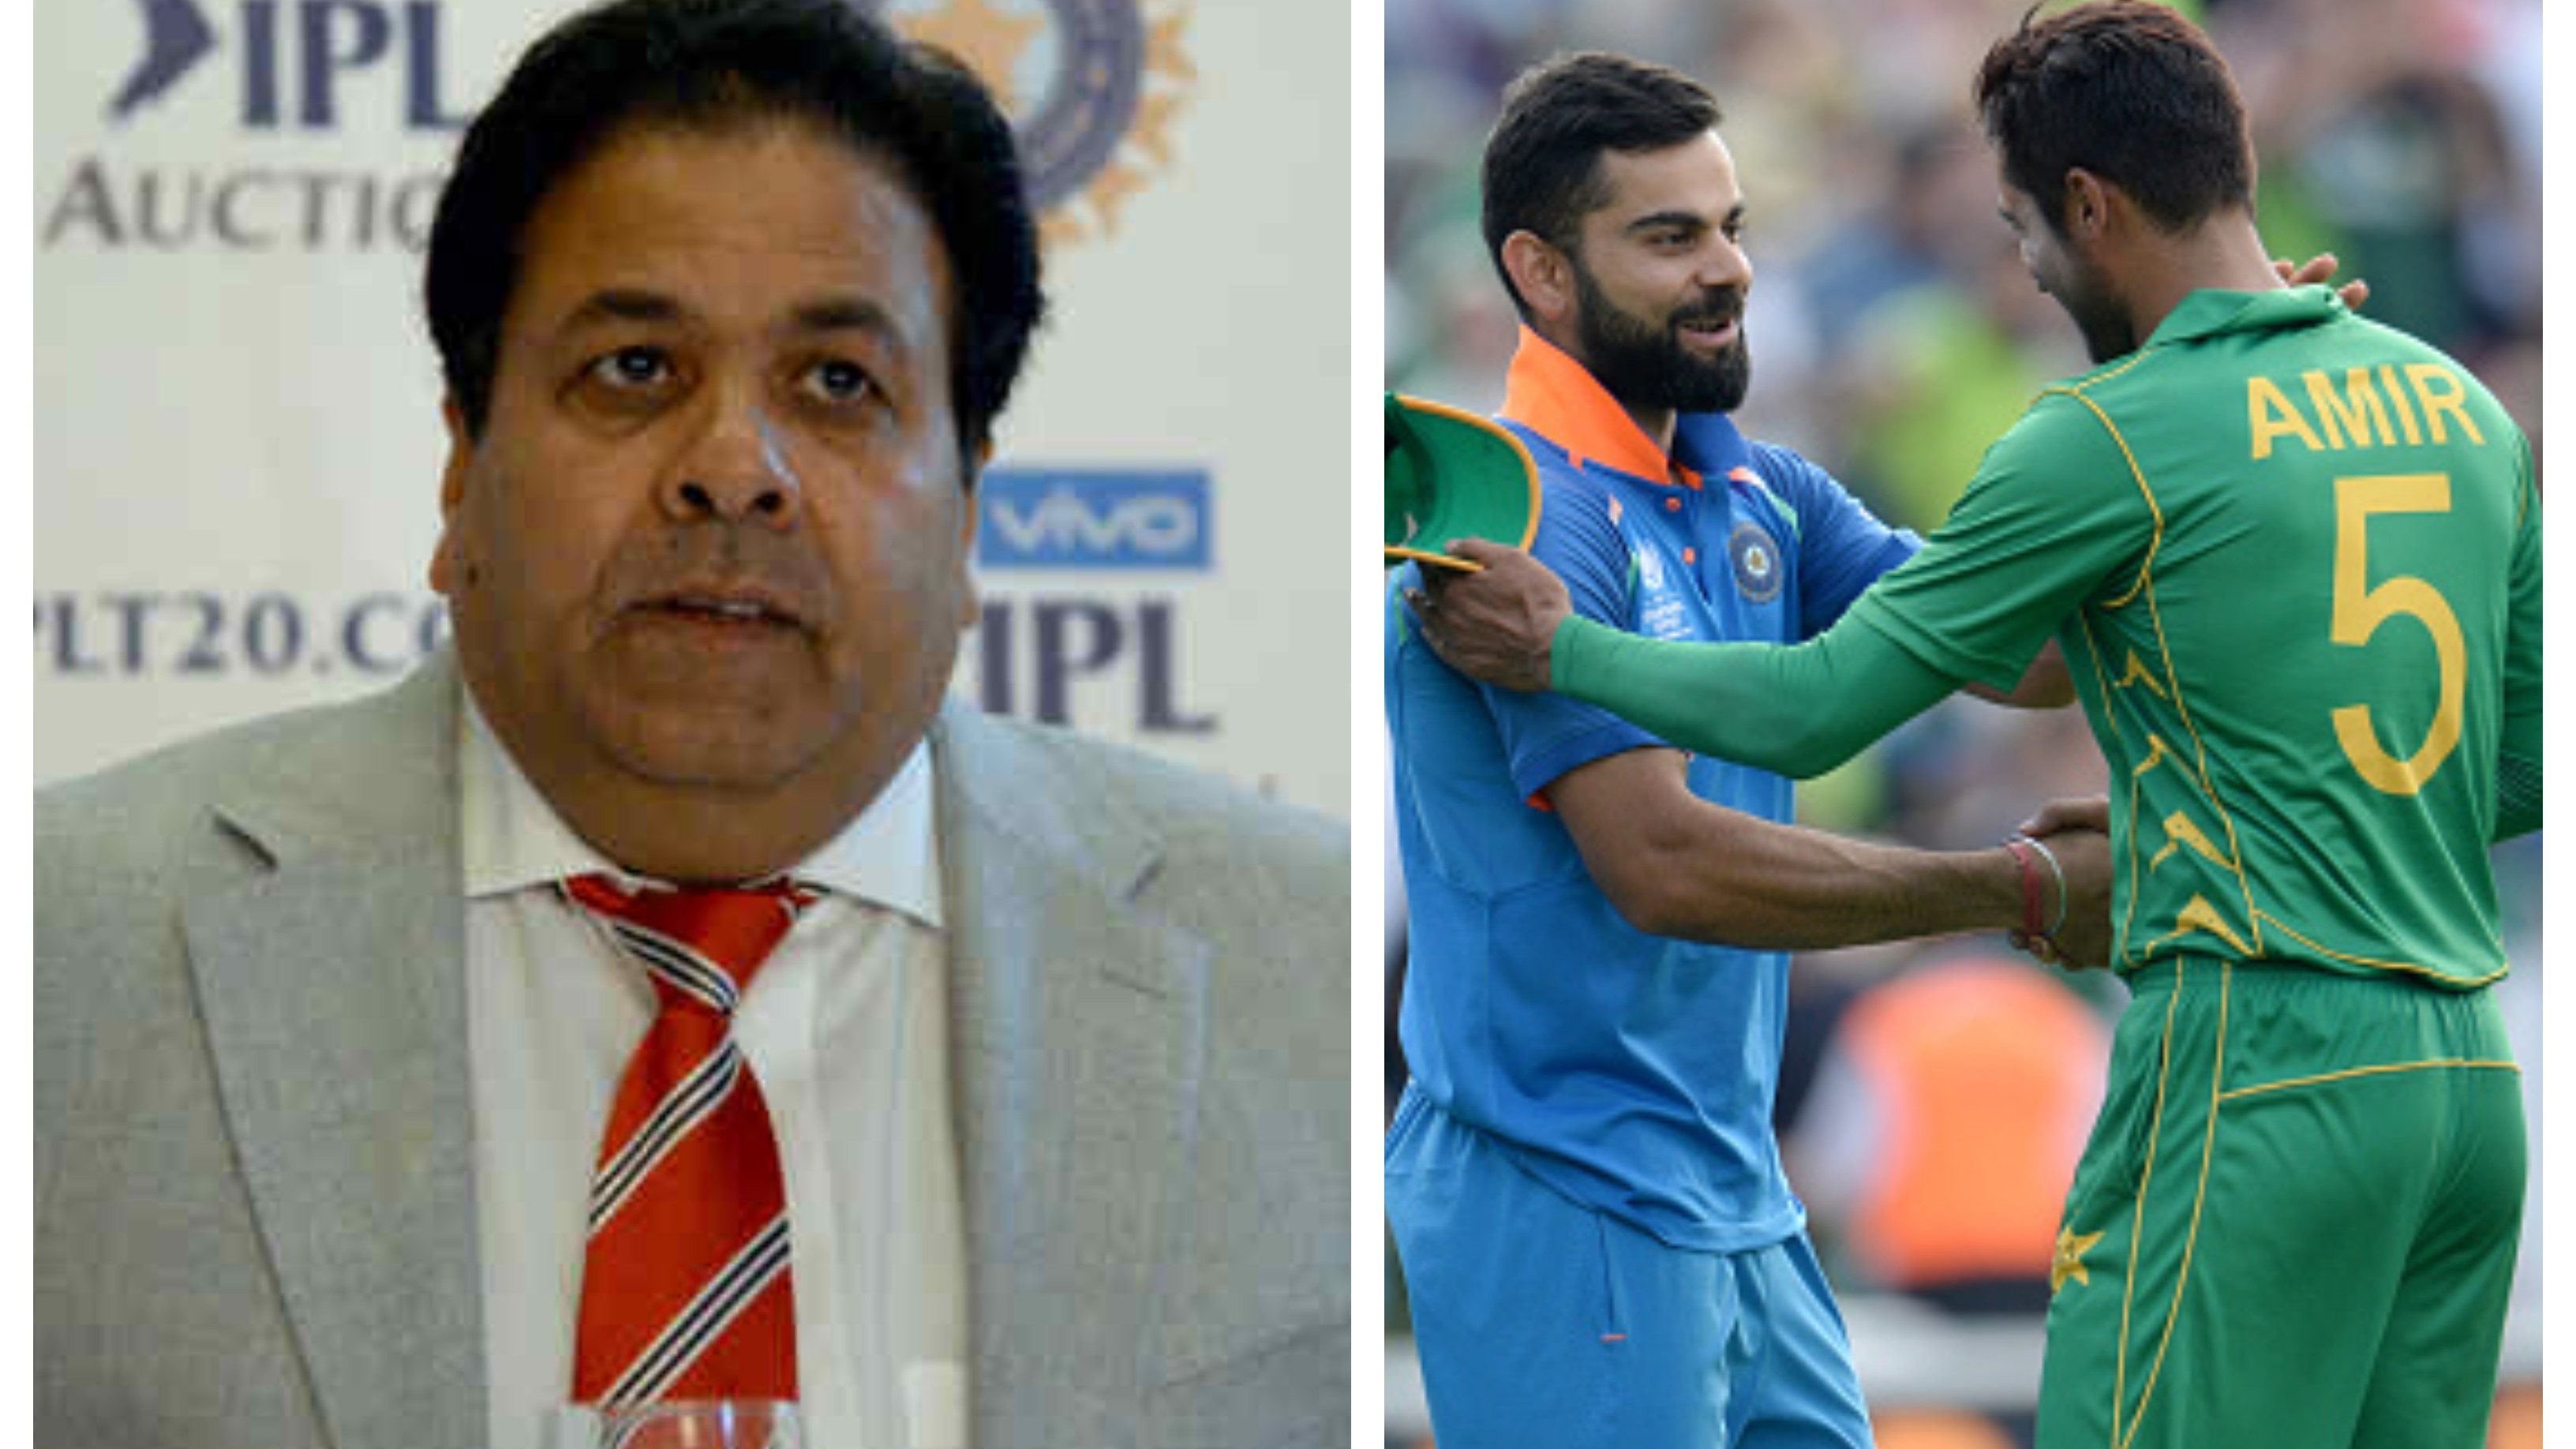 Rajeev Shukla opens up about India's stance on World Cup 2019 match against Pakistan